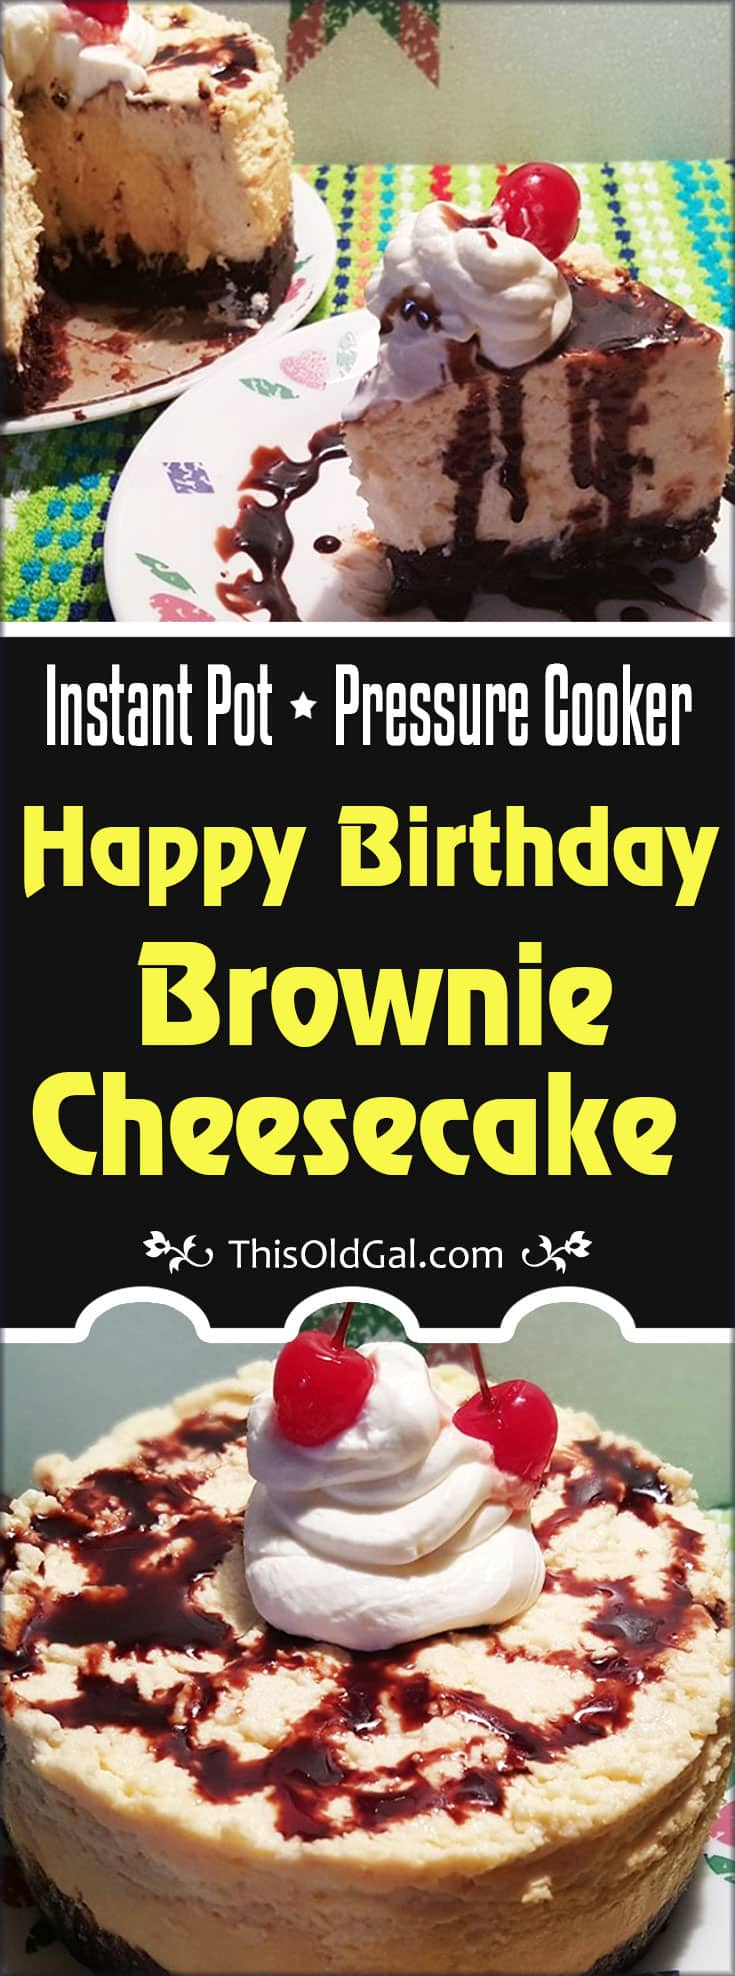 Pressure Cooker Happy Birthday Brownie Cheesecake Pake